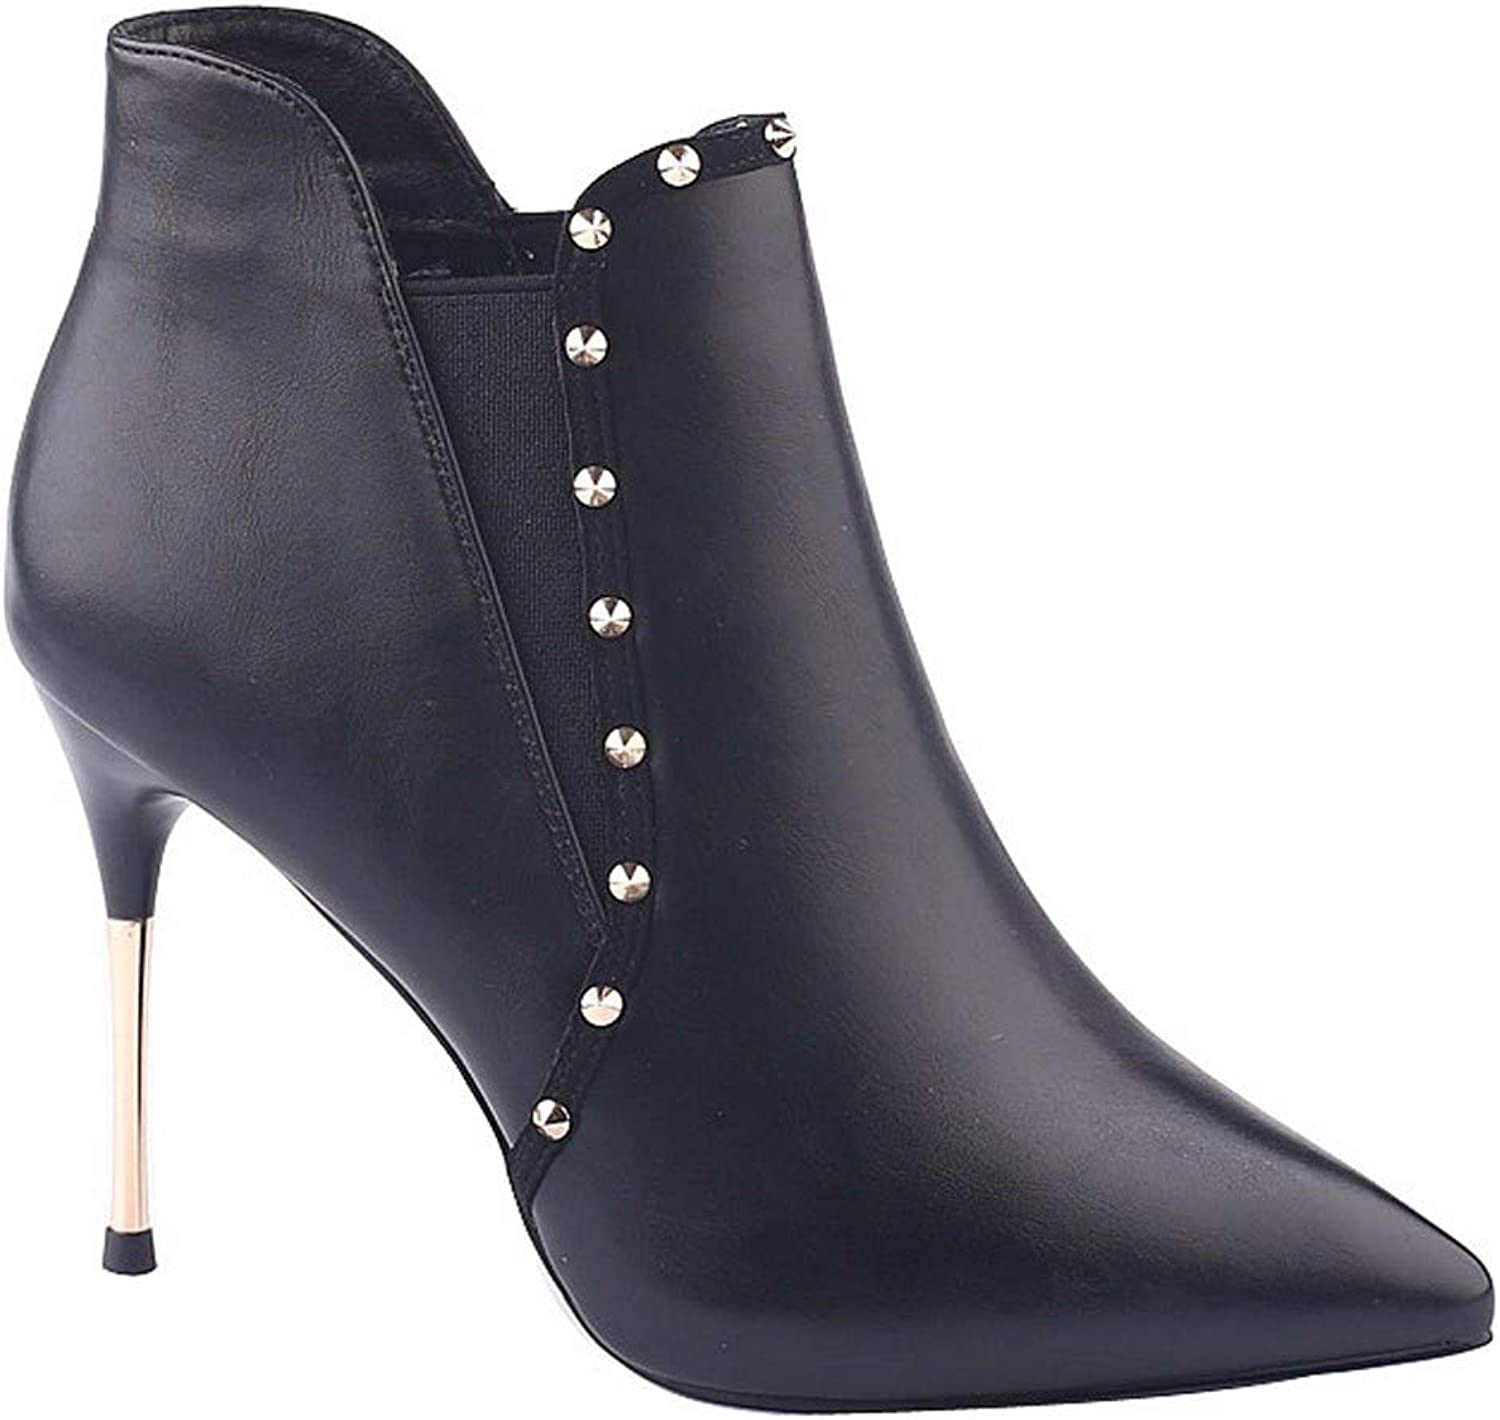 SFSYDDY Popular shoes Winter Black Short Boots with High 10Cm Sexy Rivets Thin Heels Martin Boots and Ankle Boots.